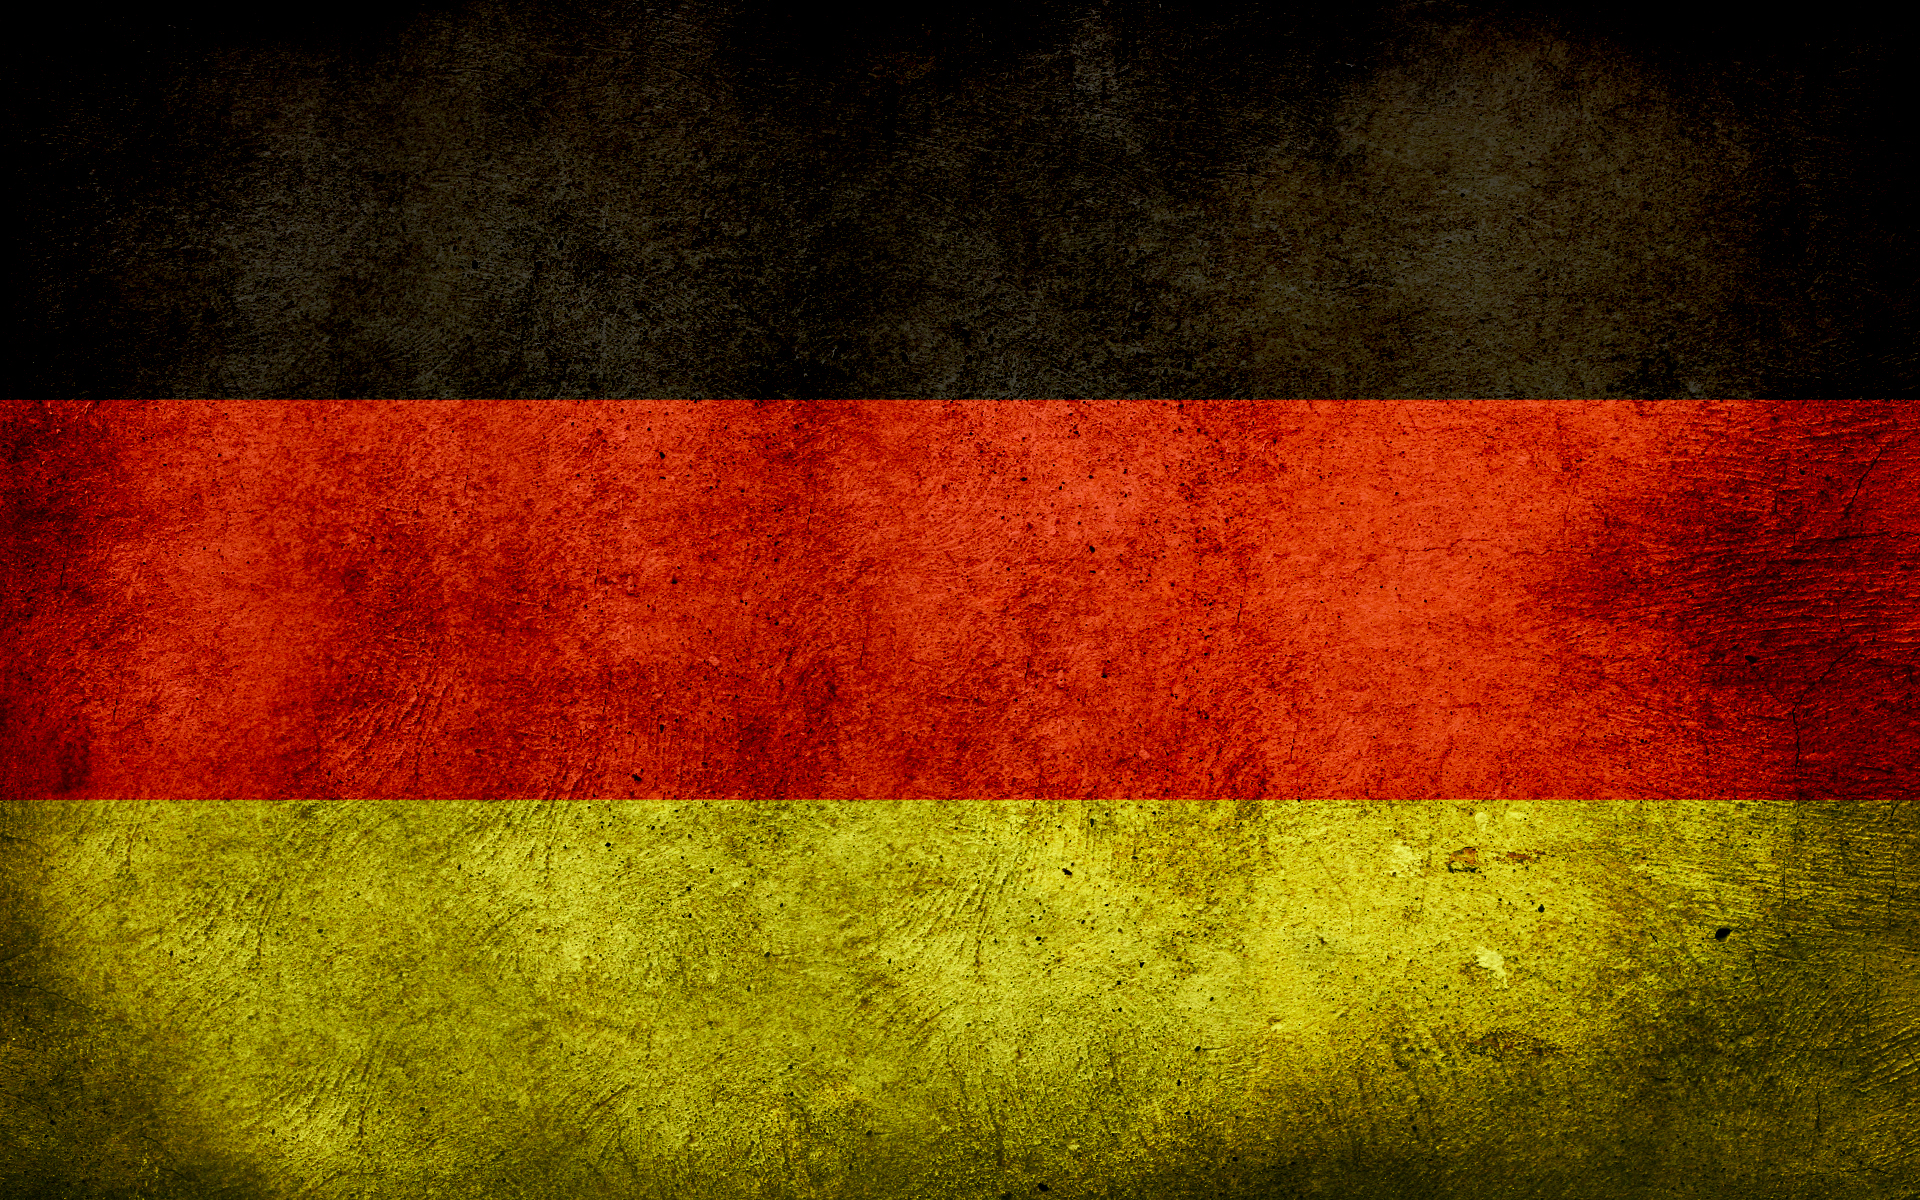 I recently received an interesting email from someone who criticized my choice of the German flag on the DANK National website, dank.org, that I designed.